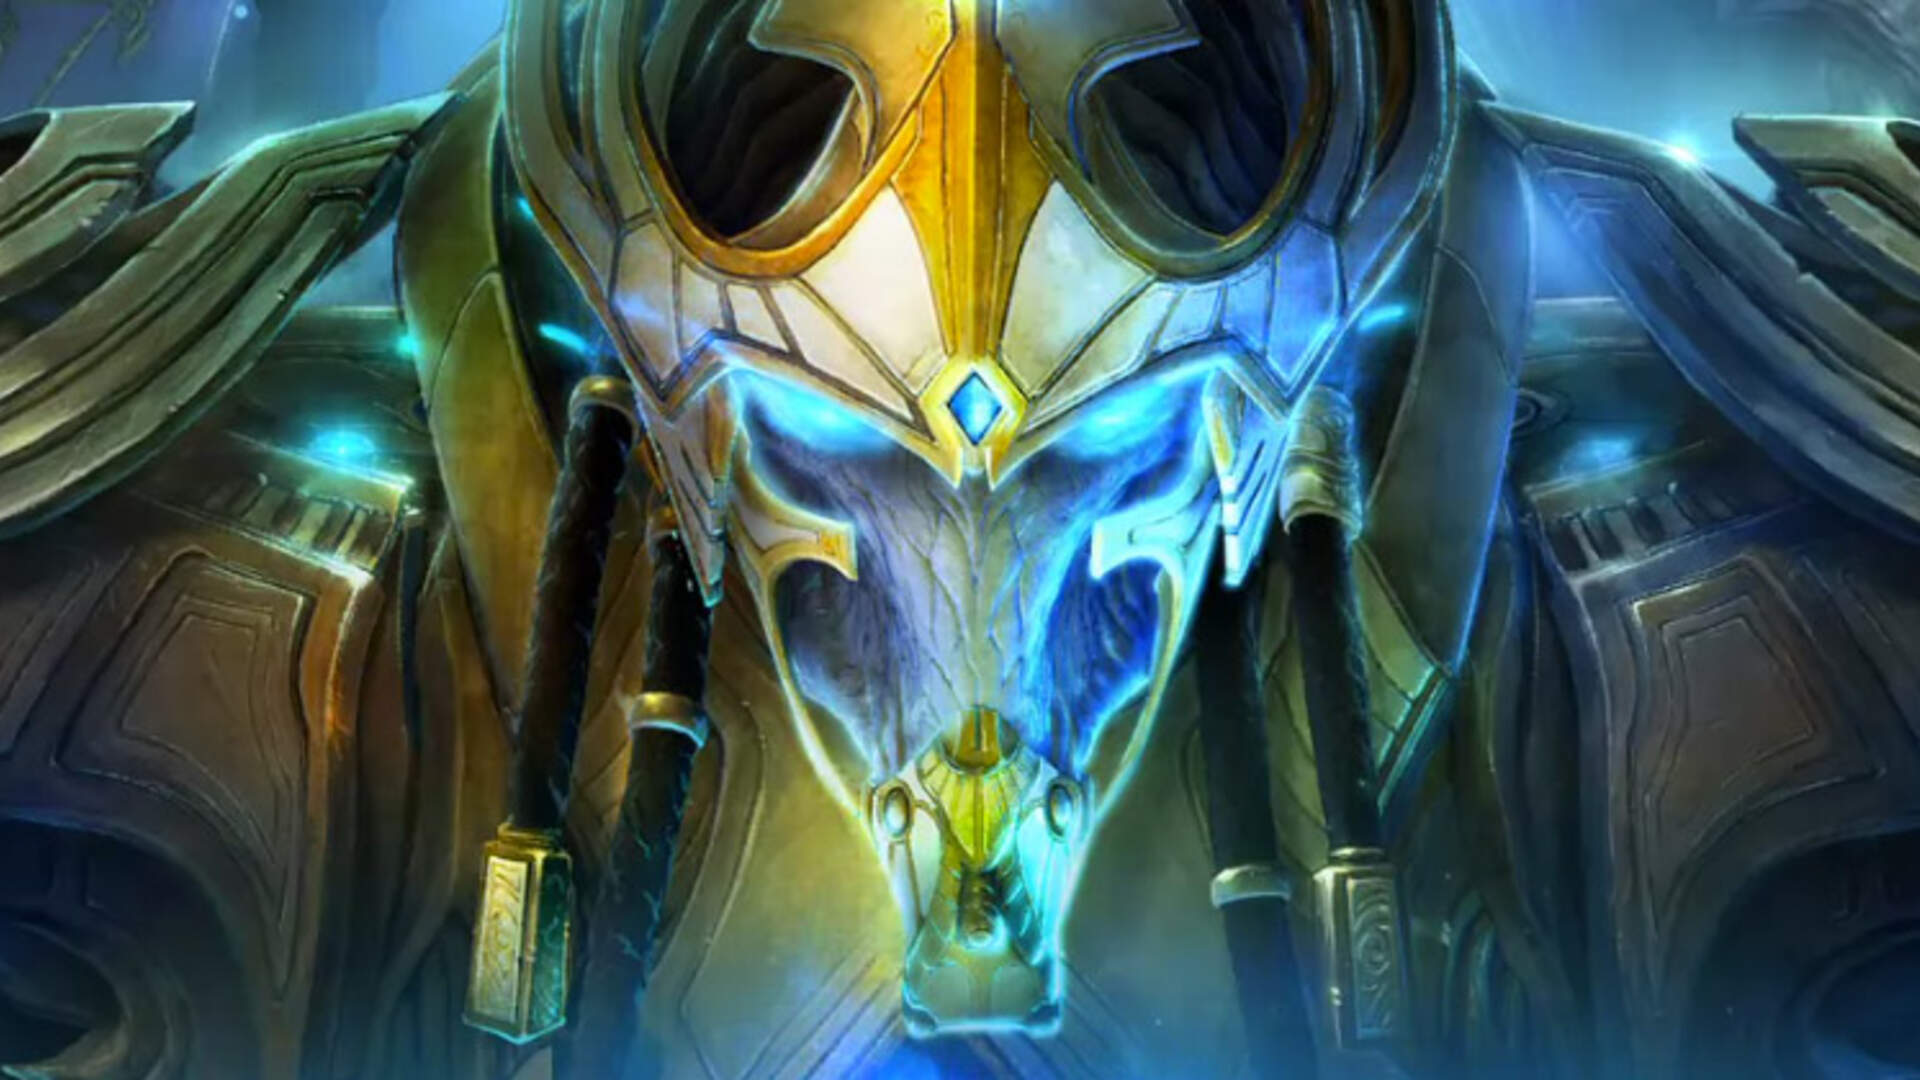 USstreamer: Kat Takes on Starcraft II: Whispers of Oblivion Today at 5:00pm PT/8:00pm ET